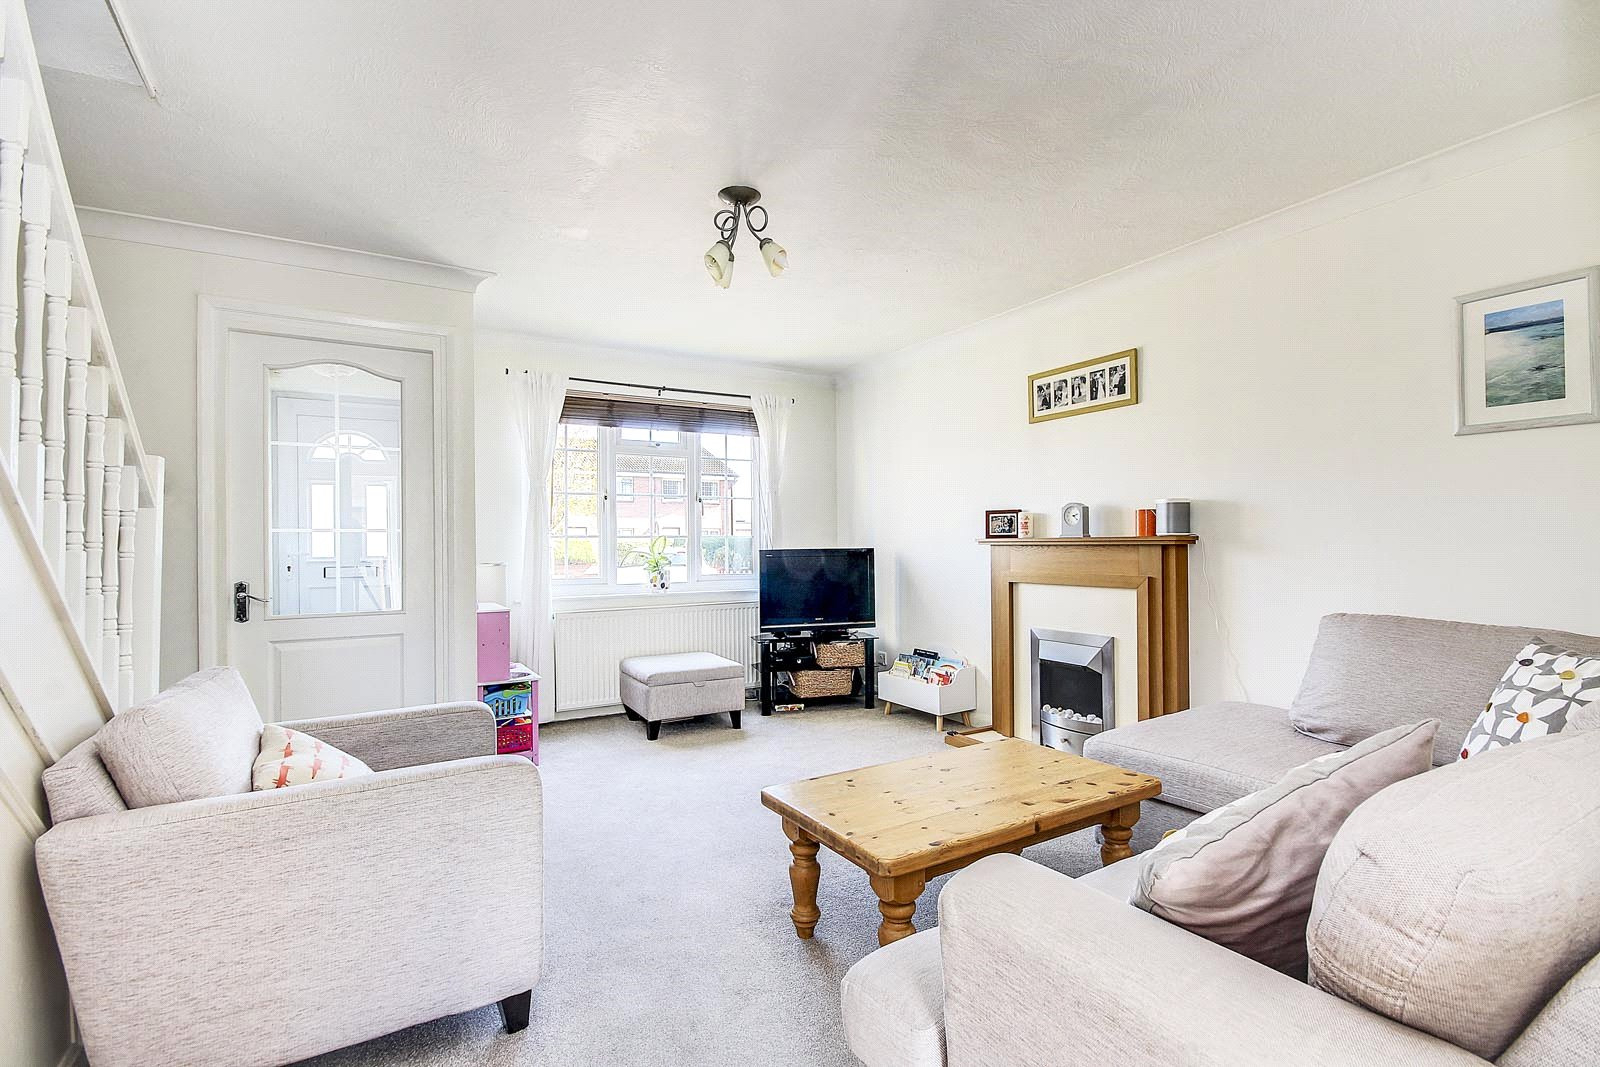 3 bed house for sale in Littlehampton, BN17 6RJ  - Property Image 4